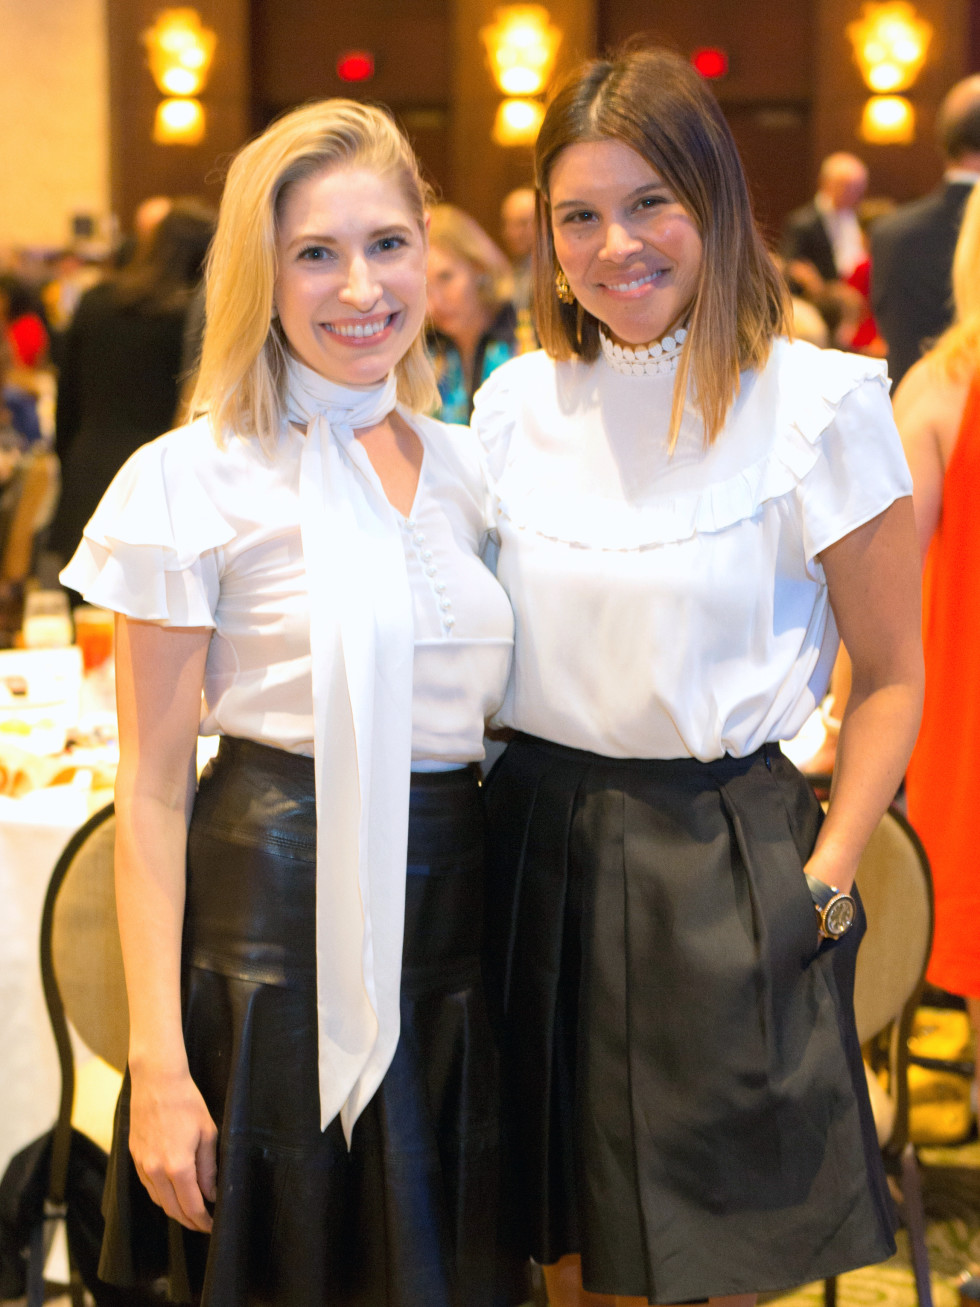 Houston, University of Texas at Austin Guardian of the Human Spirit Award Luncheon, November 2017, Isabel David, Estela Cockrell